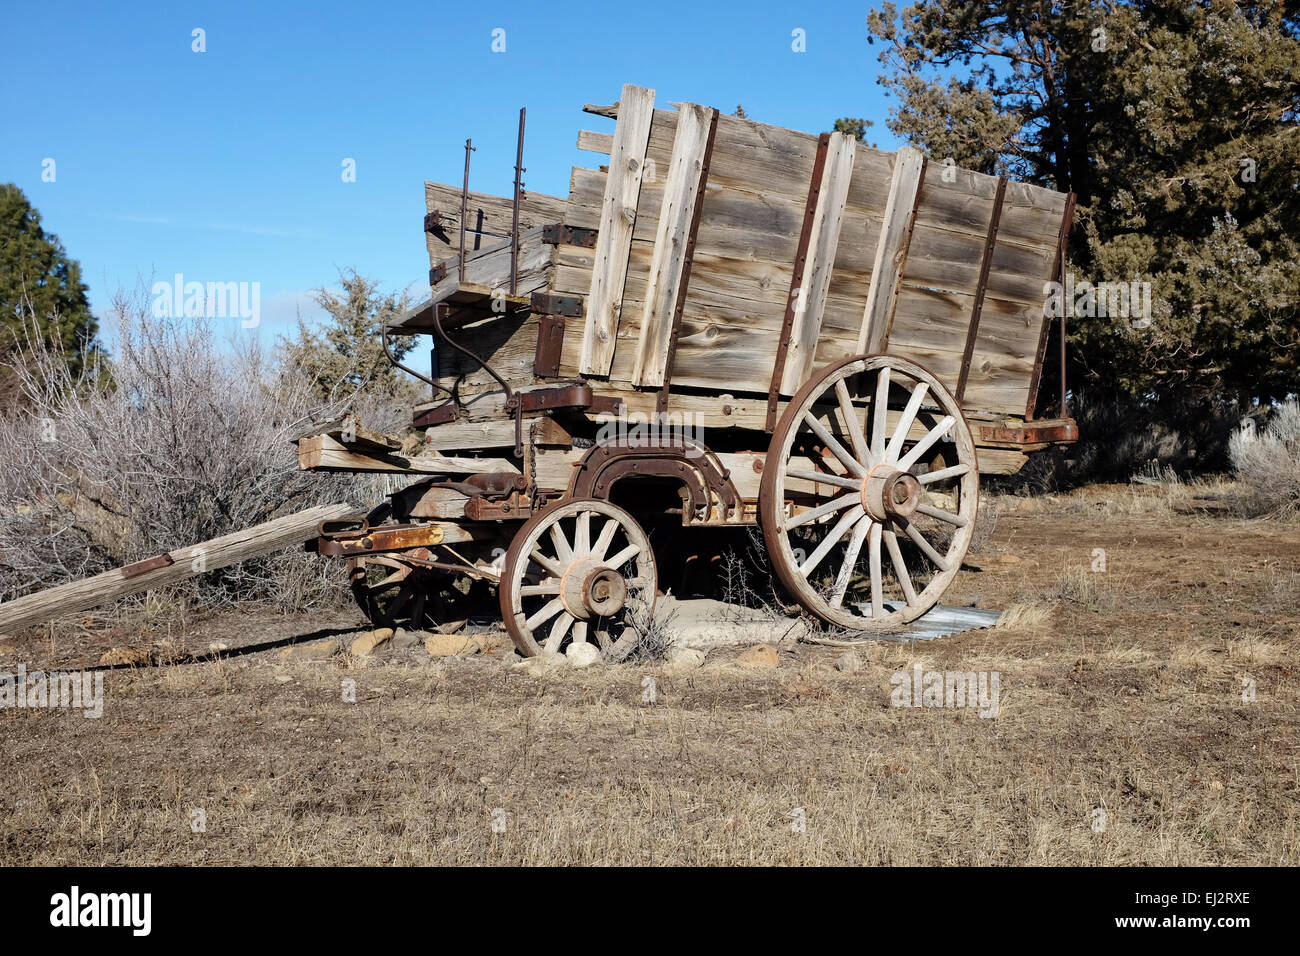 An old wooden logger's wagon in Bend, Oregon - Stock Image